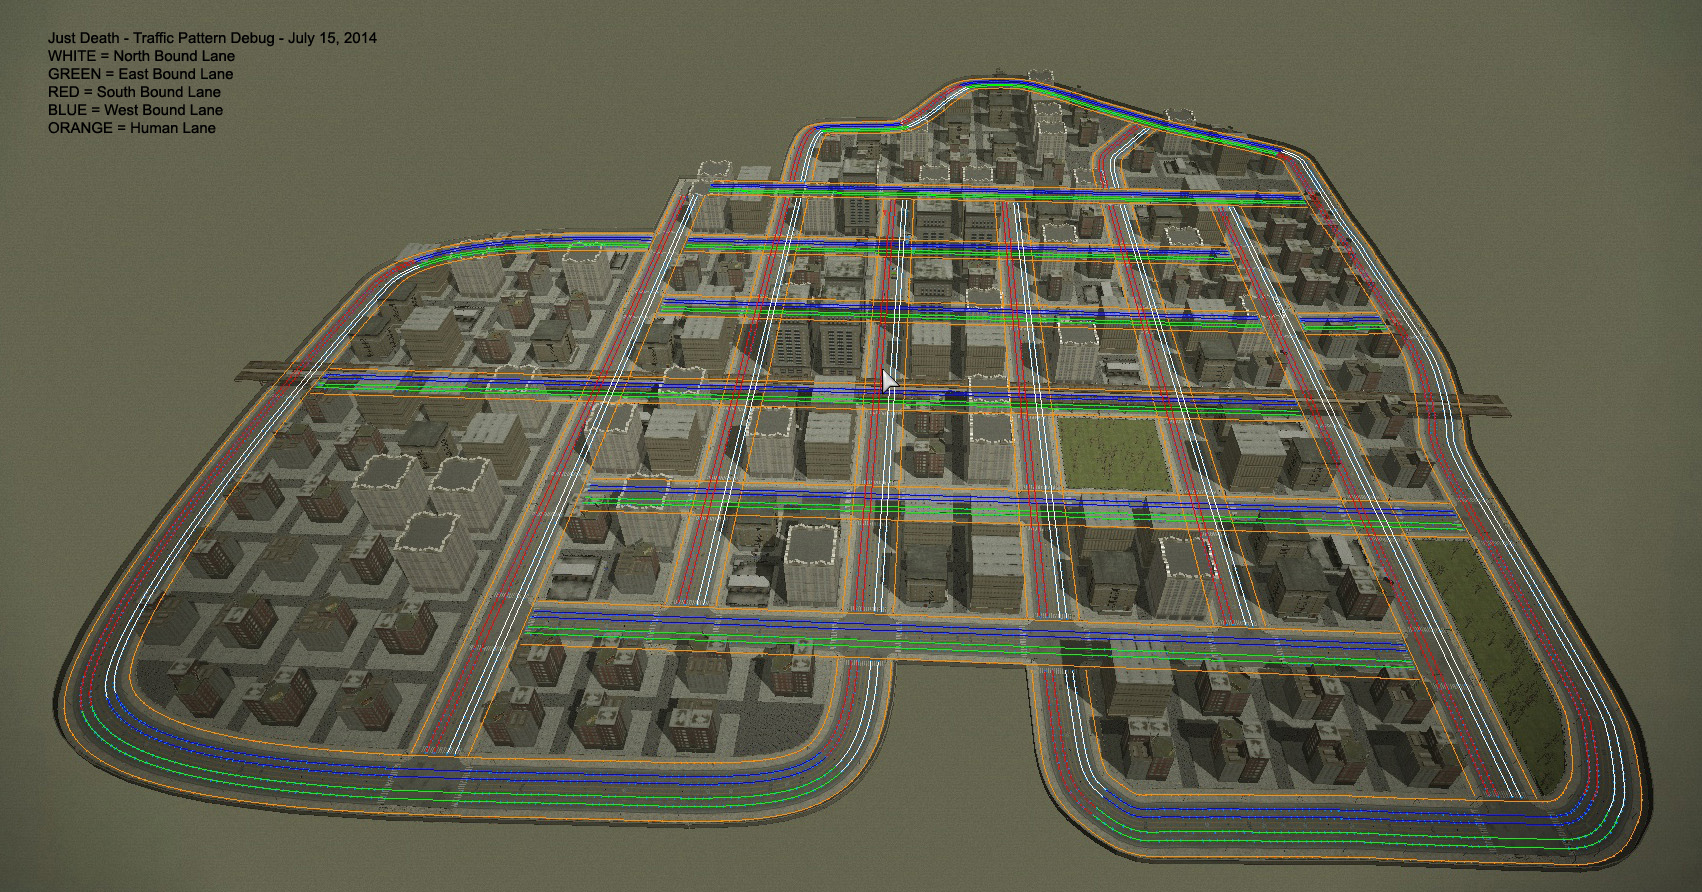 Generating Traffic Patterns In A Procedural City news - Just Death